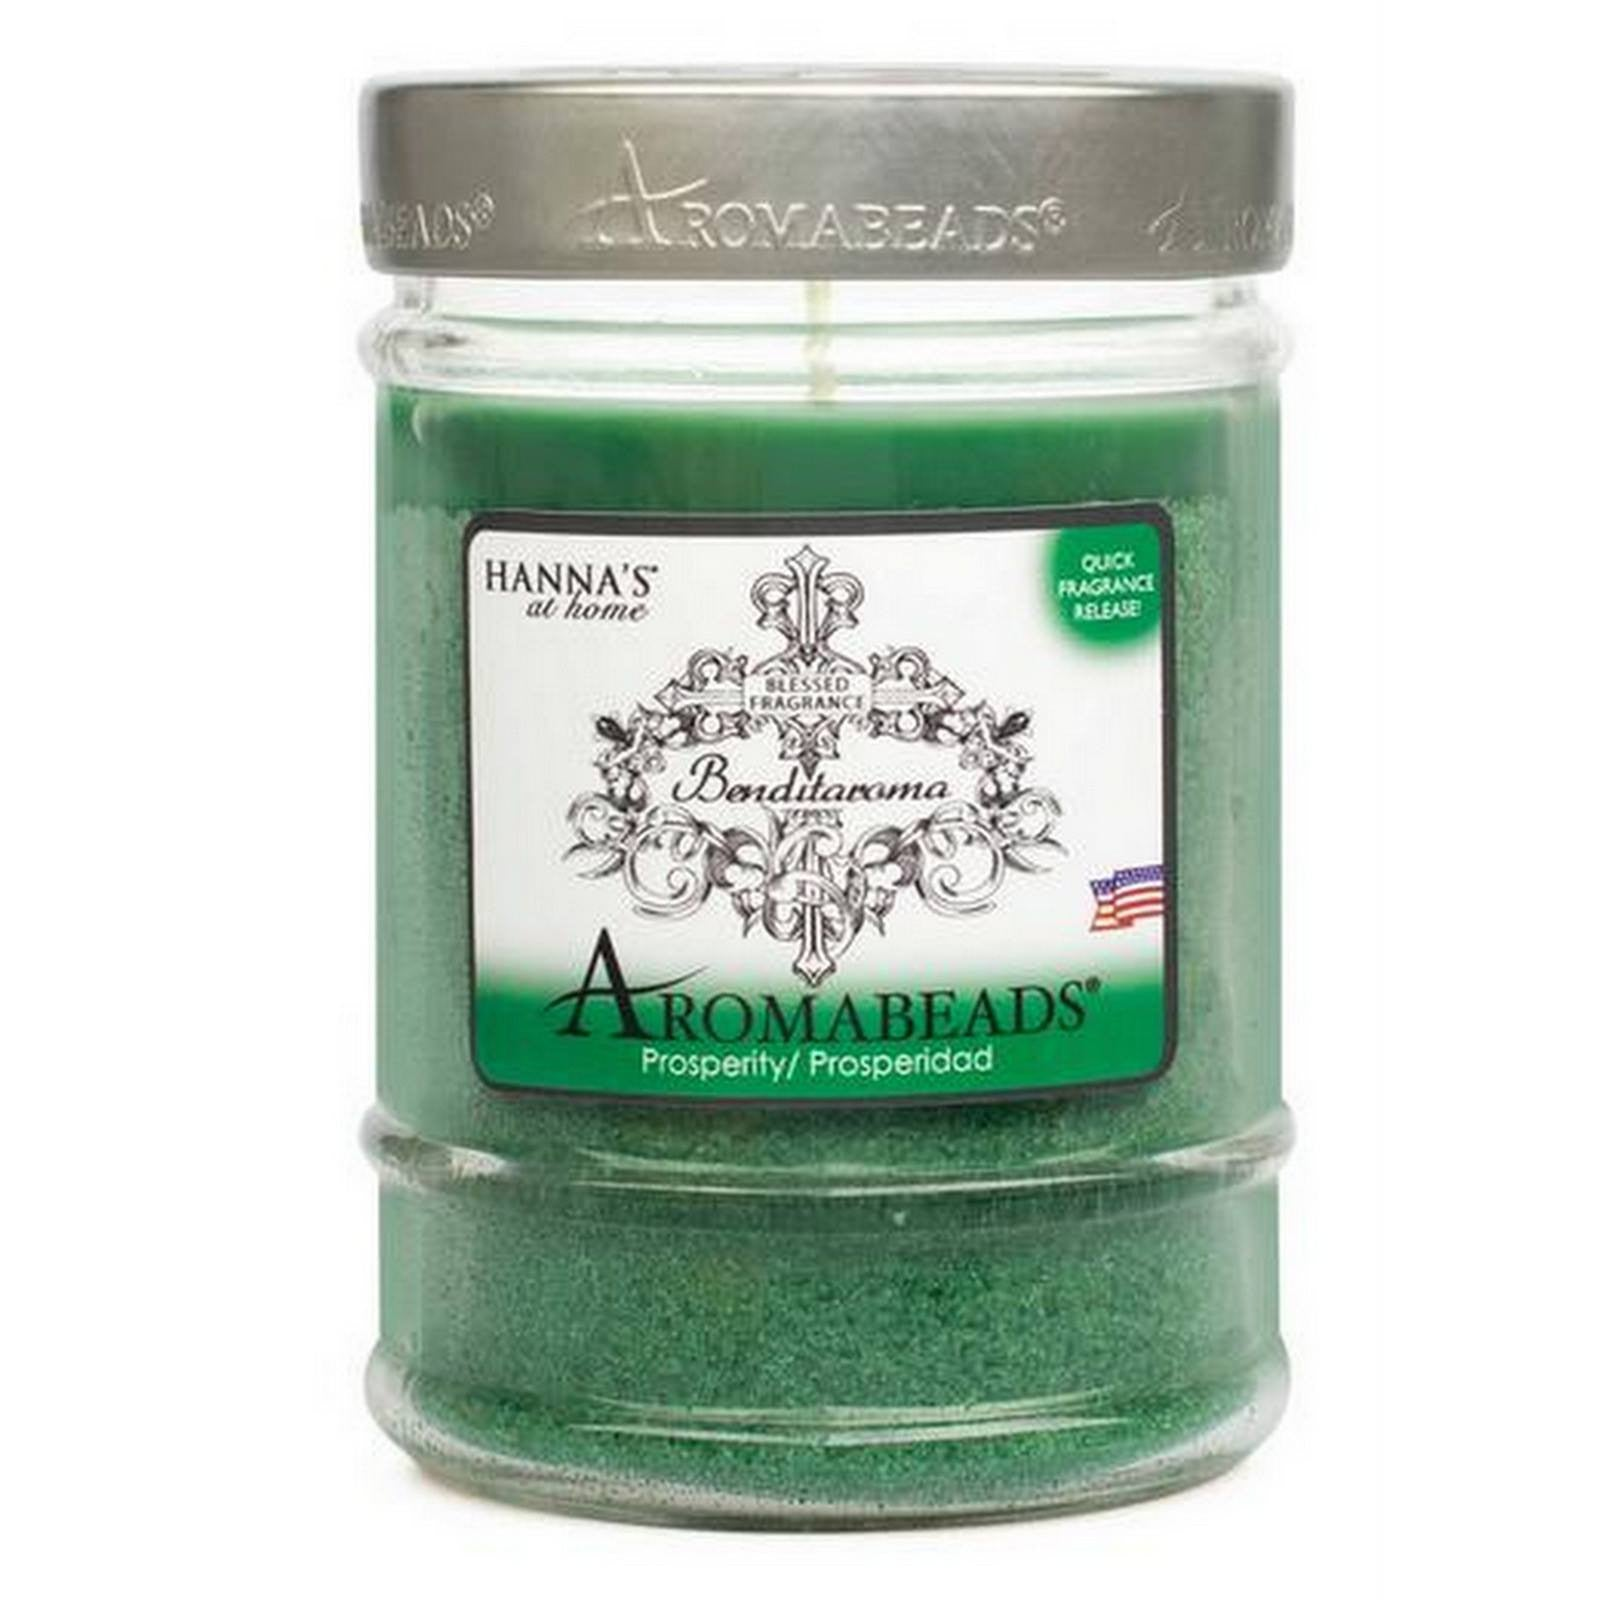 Benditaroma Aromabeads Prosperity Scented Canister Candle Aromabeads Candlemart.com $ 4.49